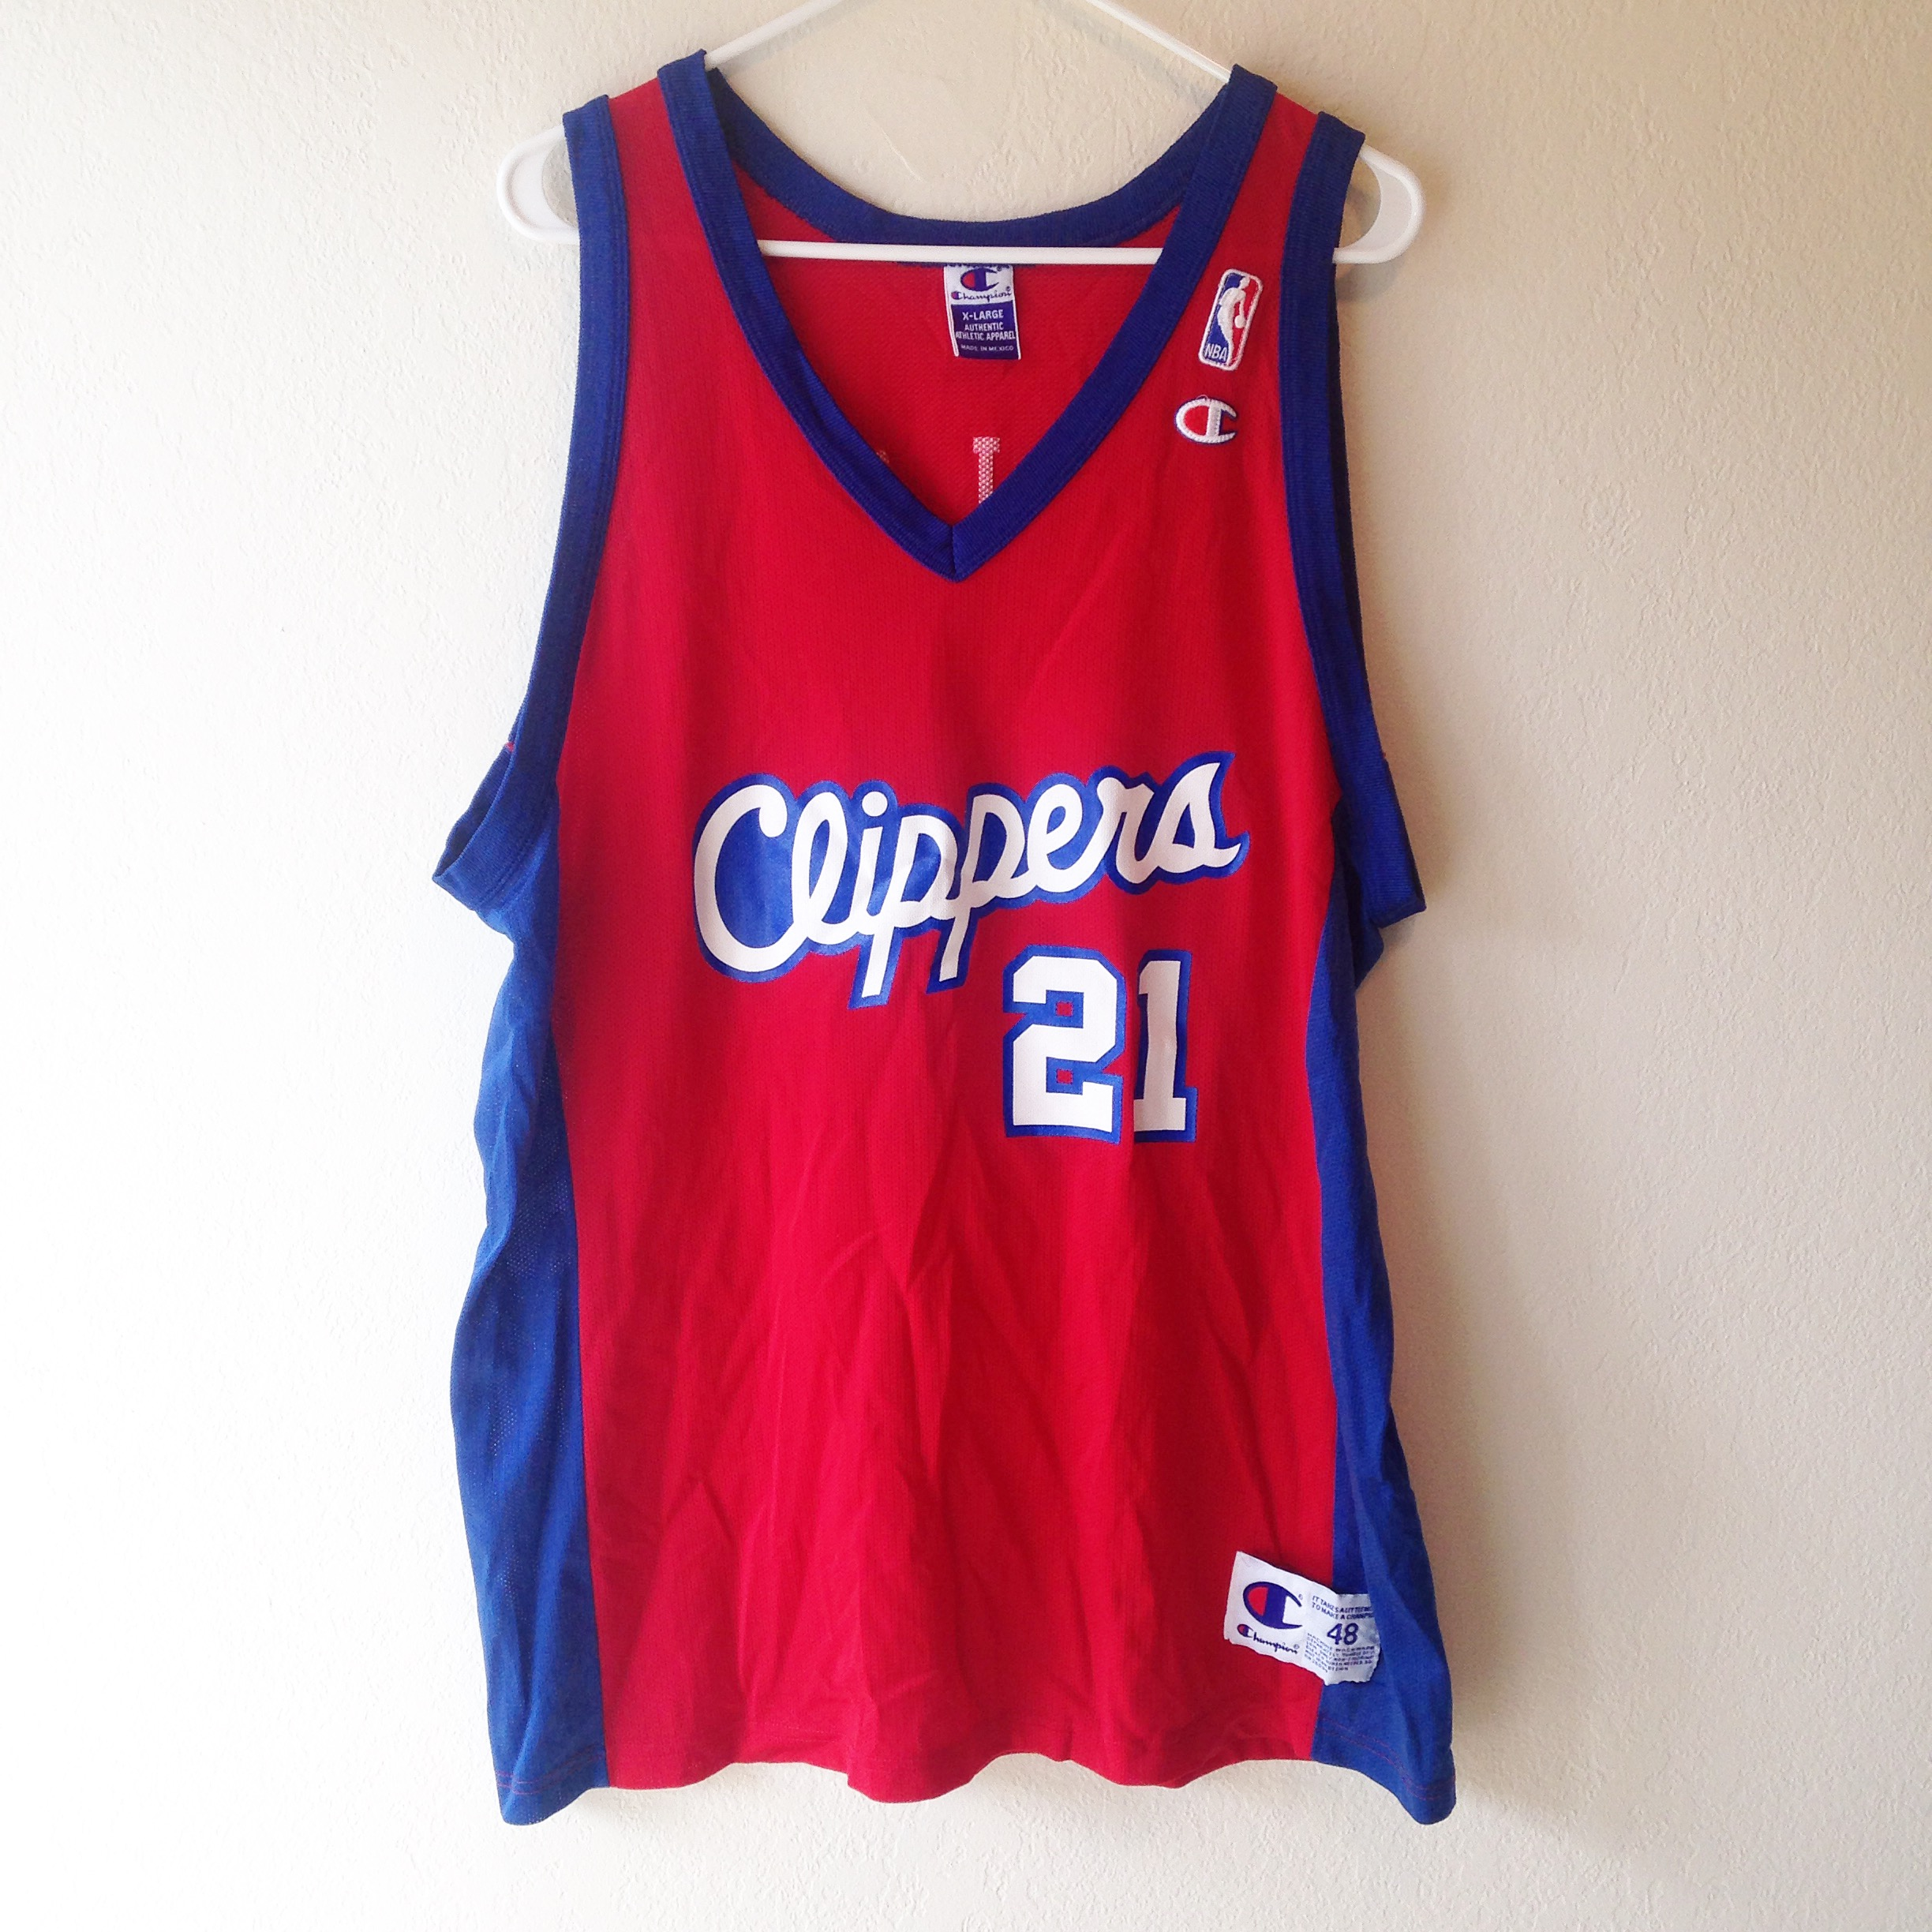 0e90d97910a Los Angeles Clippers Darius Miles Champion Jersey 48 on Storenvy